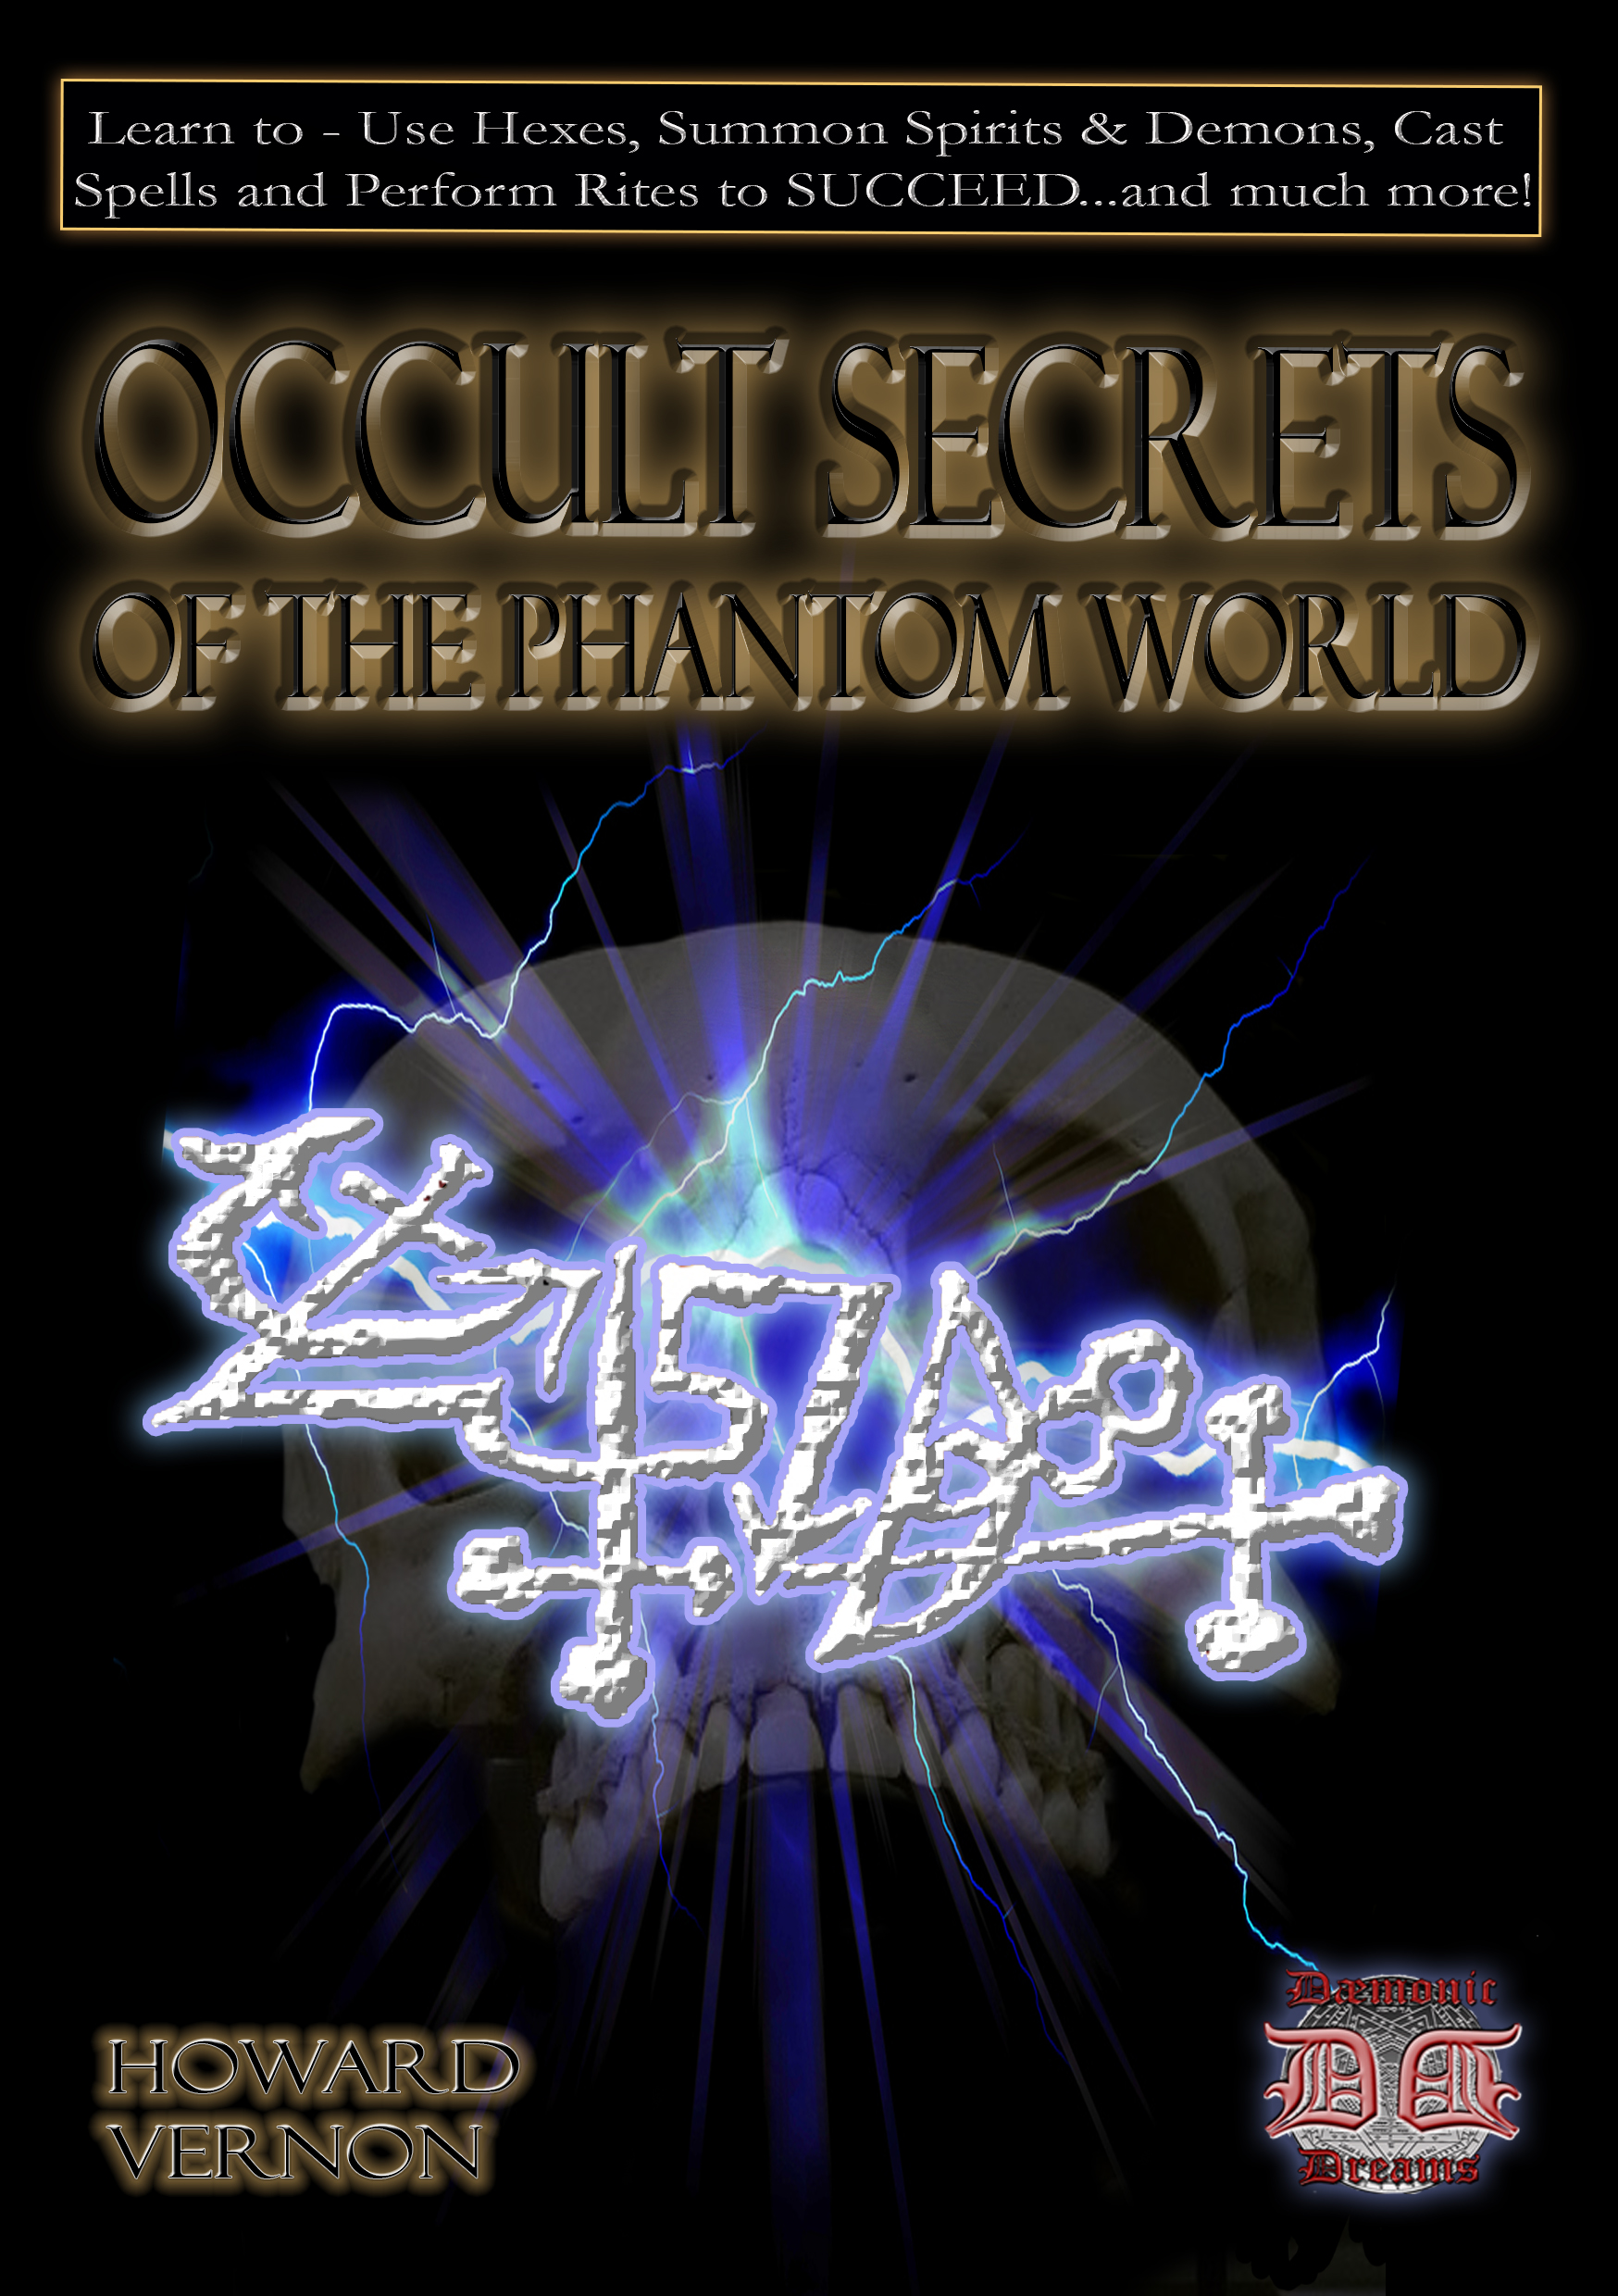 OCCULT SECRETS OF THE PHANTOM WORLD By Howard Vernon